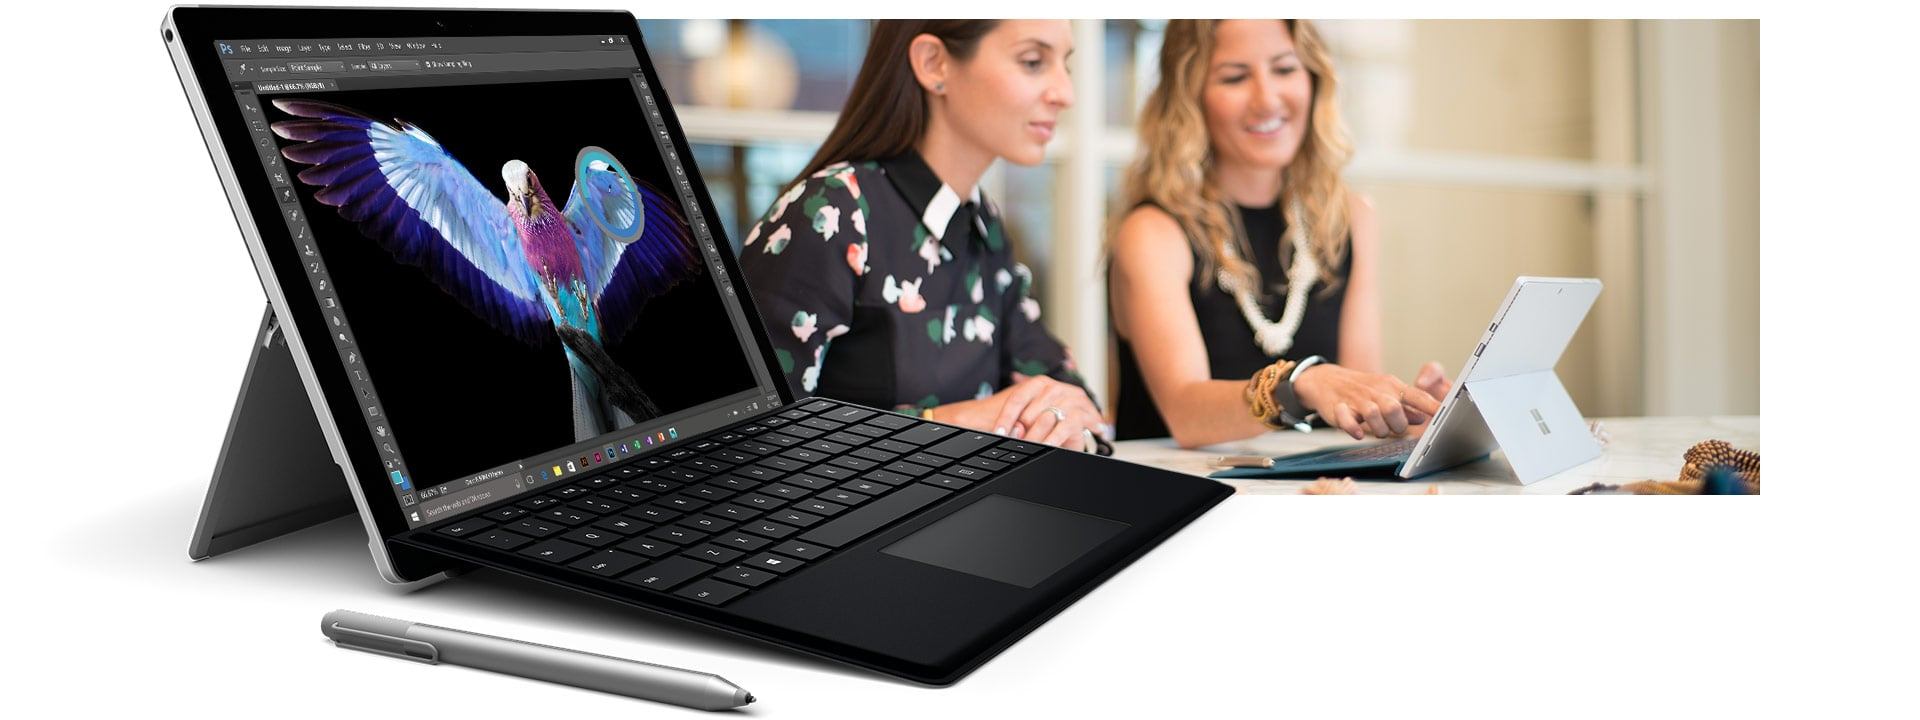 Surface Pro 4 with black keyboard open with the Surface Pen next to it with an image of a woman looking at a Surface Pro 4 in tablet mode behind it